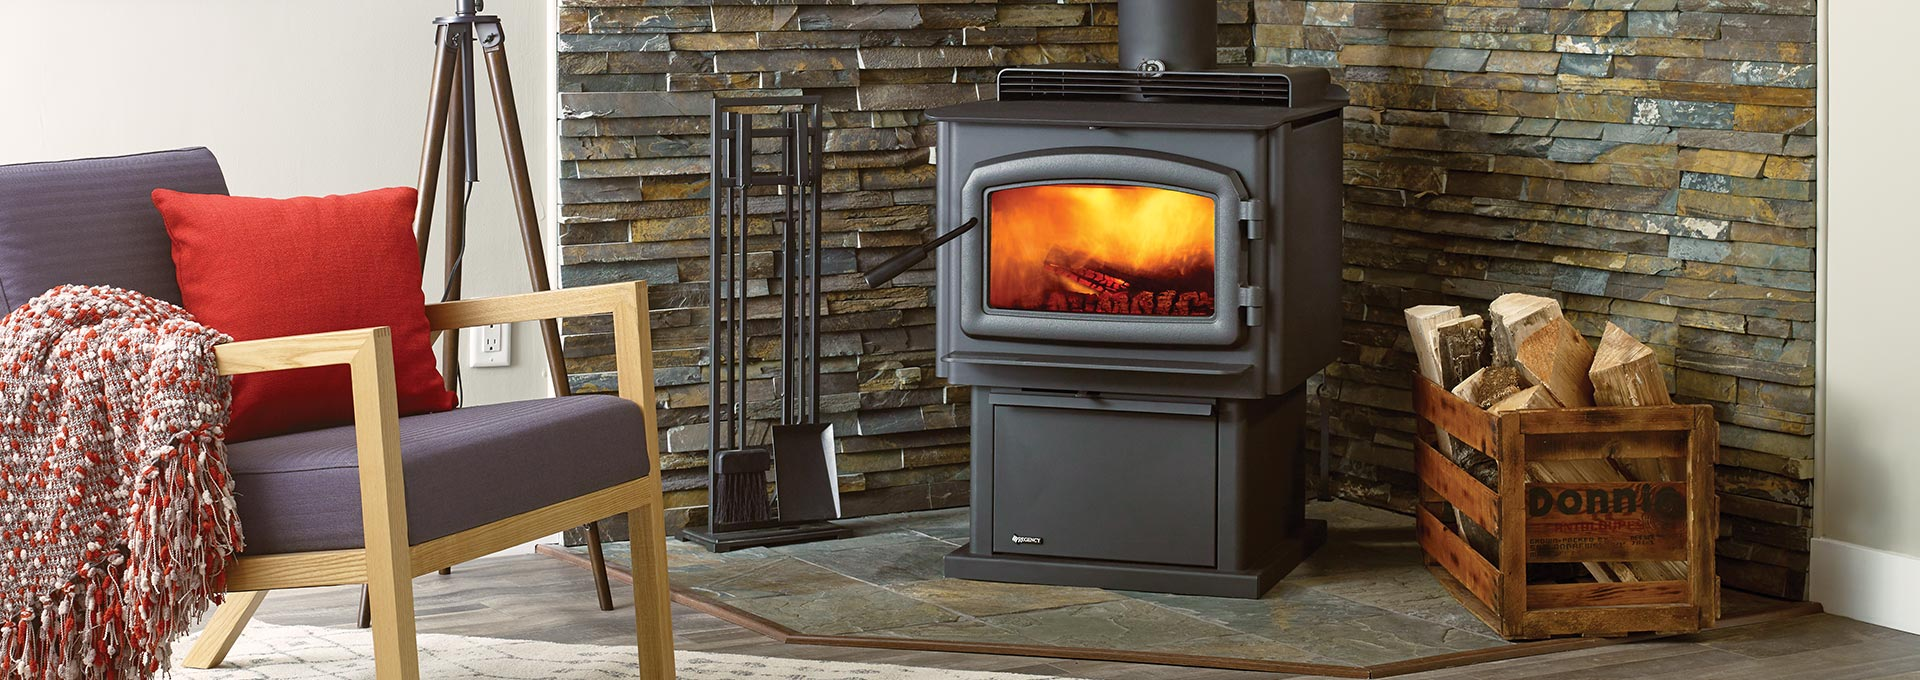 Regency Products Gas Fireplace Inserts Wood Burning